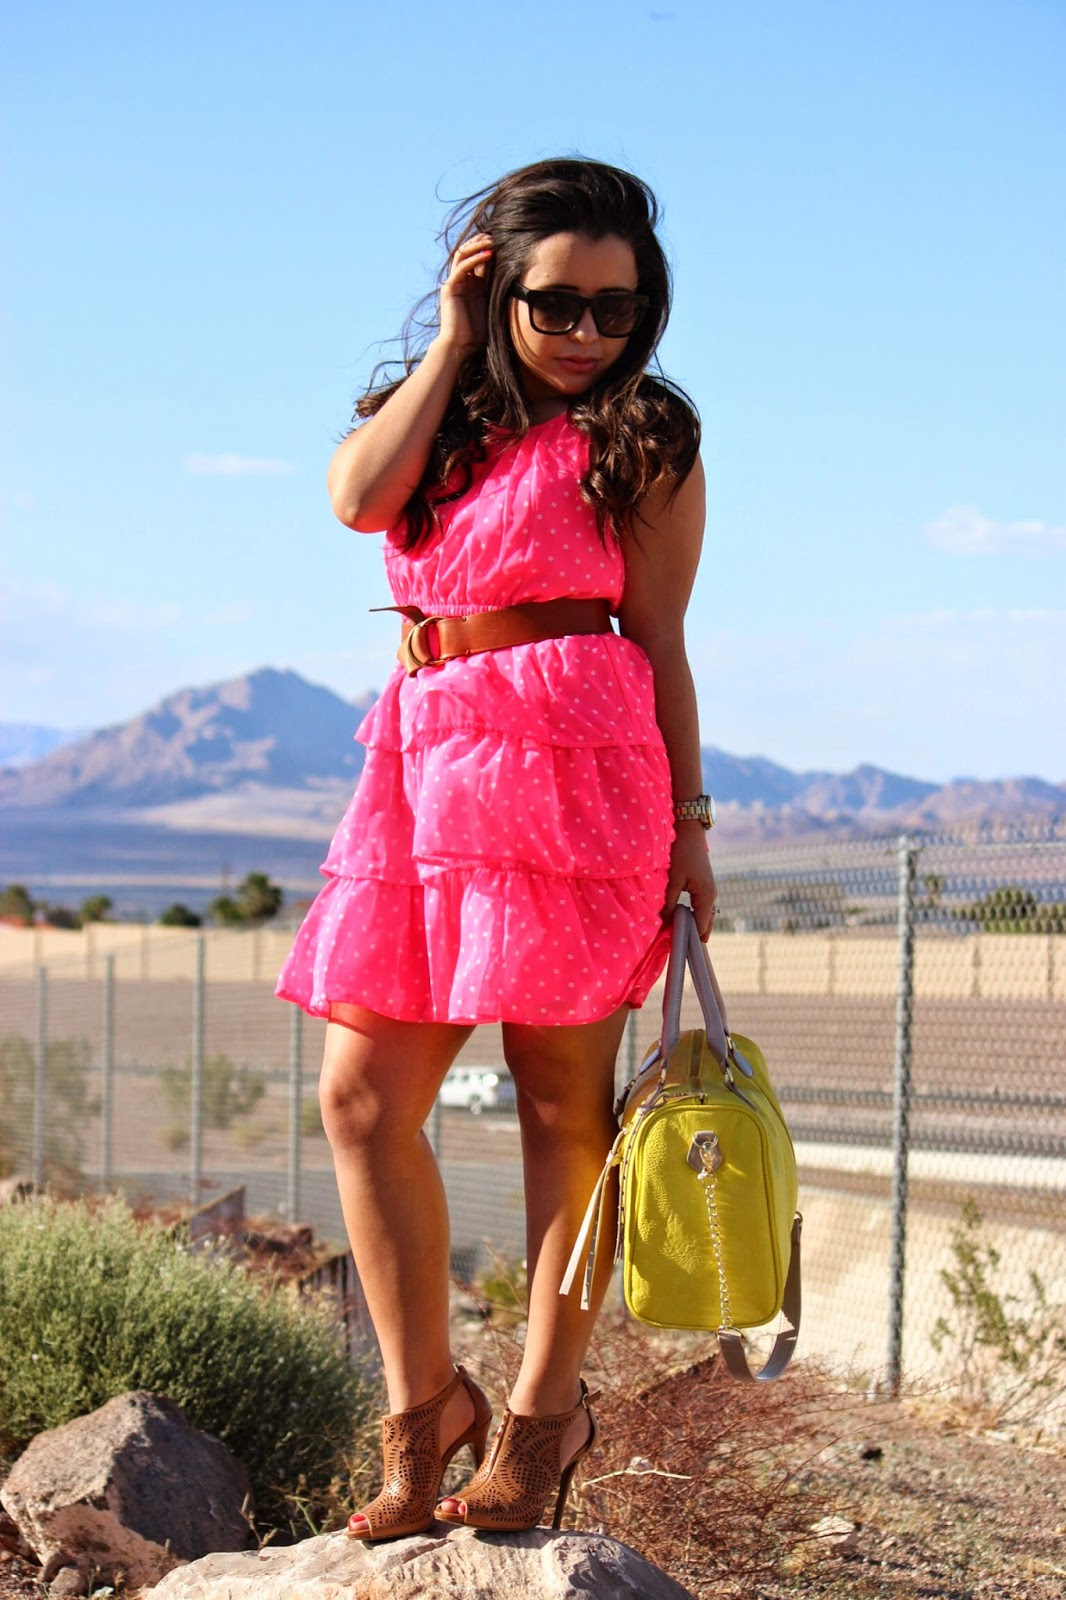 Las Vegas fashion, las vegas blogger, what to wear in vegas, latina blogger, latina street style, colombian street style, moda bogotana